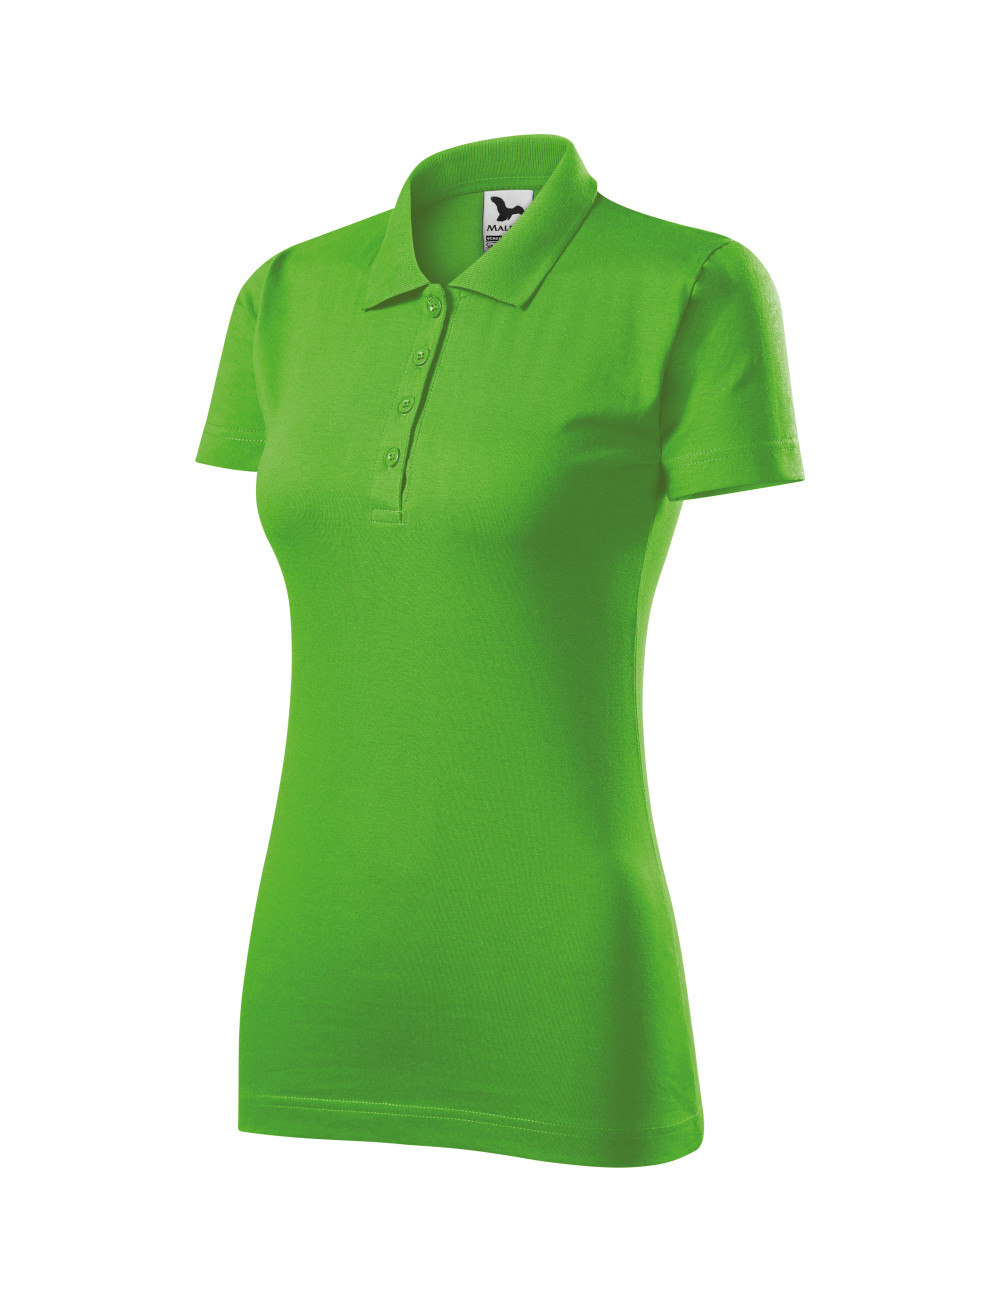 Adler MALFINI Koszulka polo damska Single J. 223 green apple